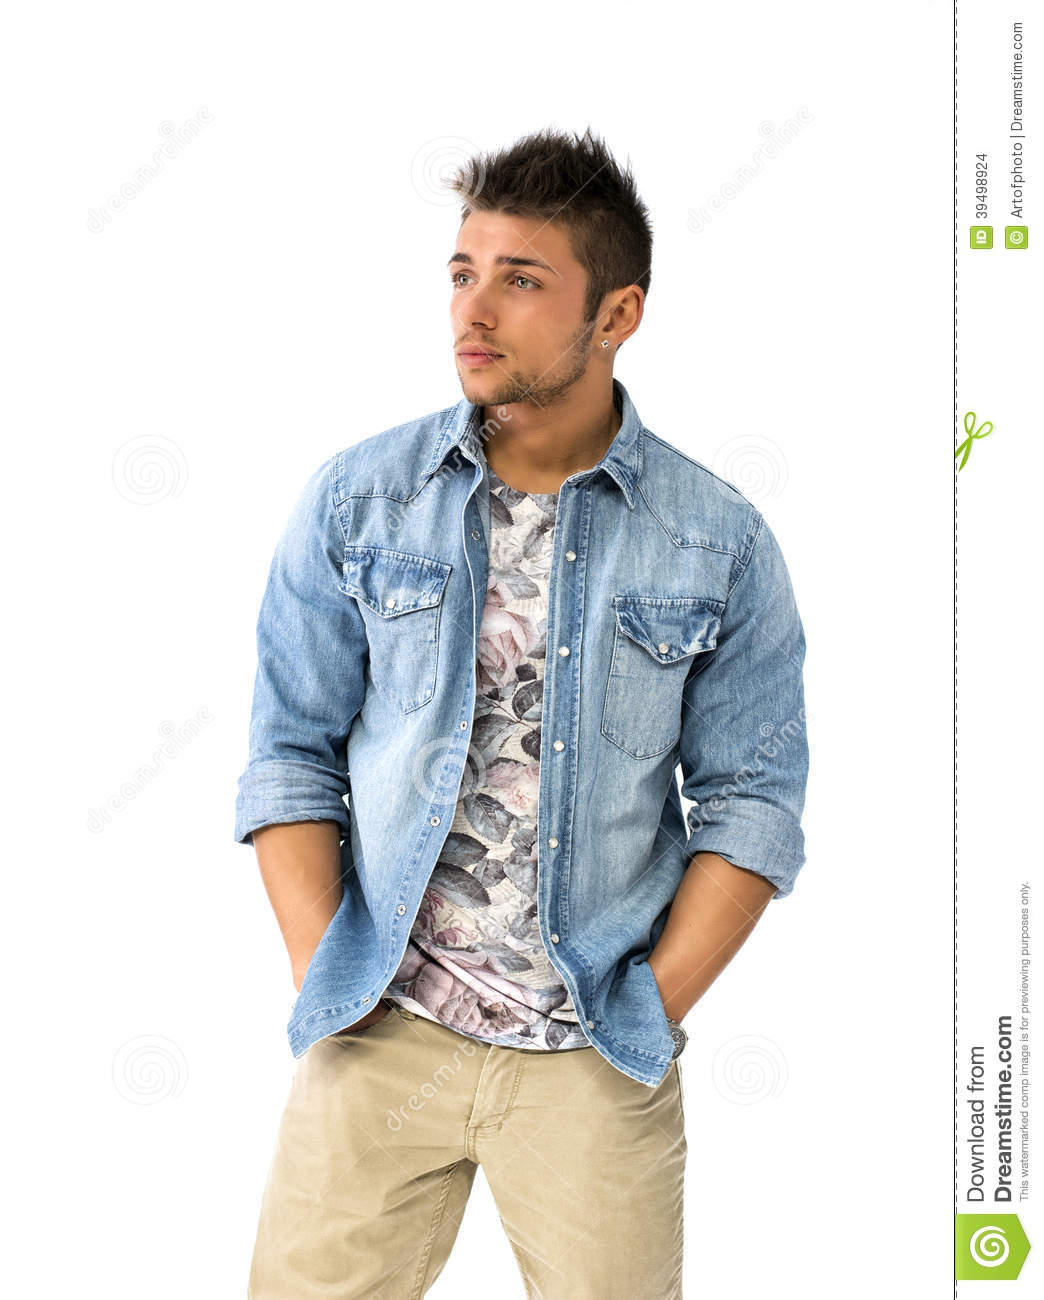 Handsome Young Man Standing With Open Denim Shirt Stock Photo